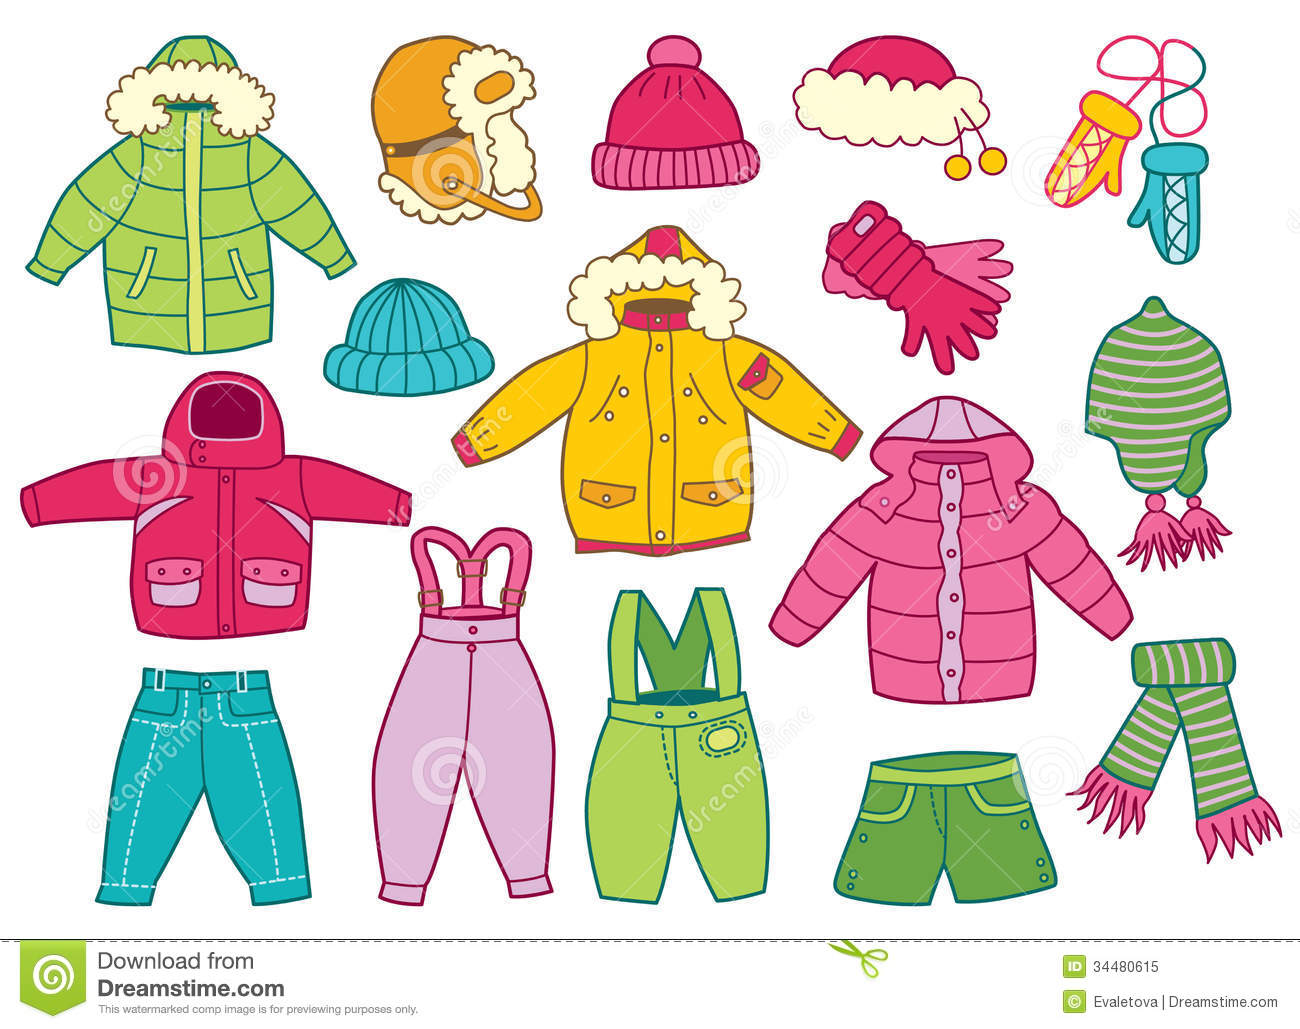 Collection Of Winter Children's Clothing Royalty Free ...: http://www.dreamstime.com/royalty-free-stock-photo-collection-winter-children-s-clothing-vector-illustration-image34480615